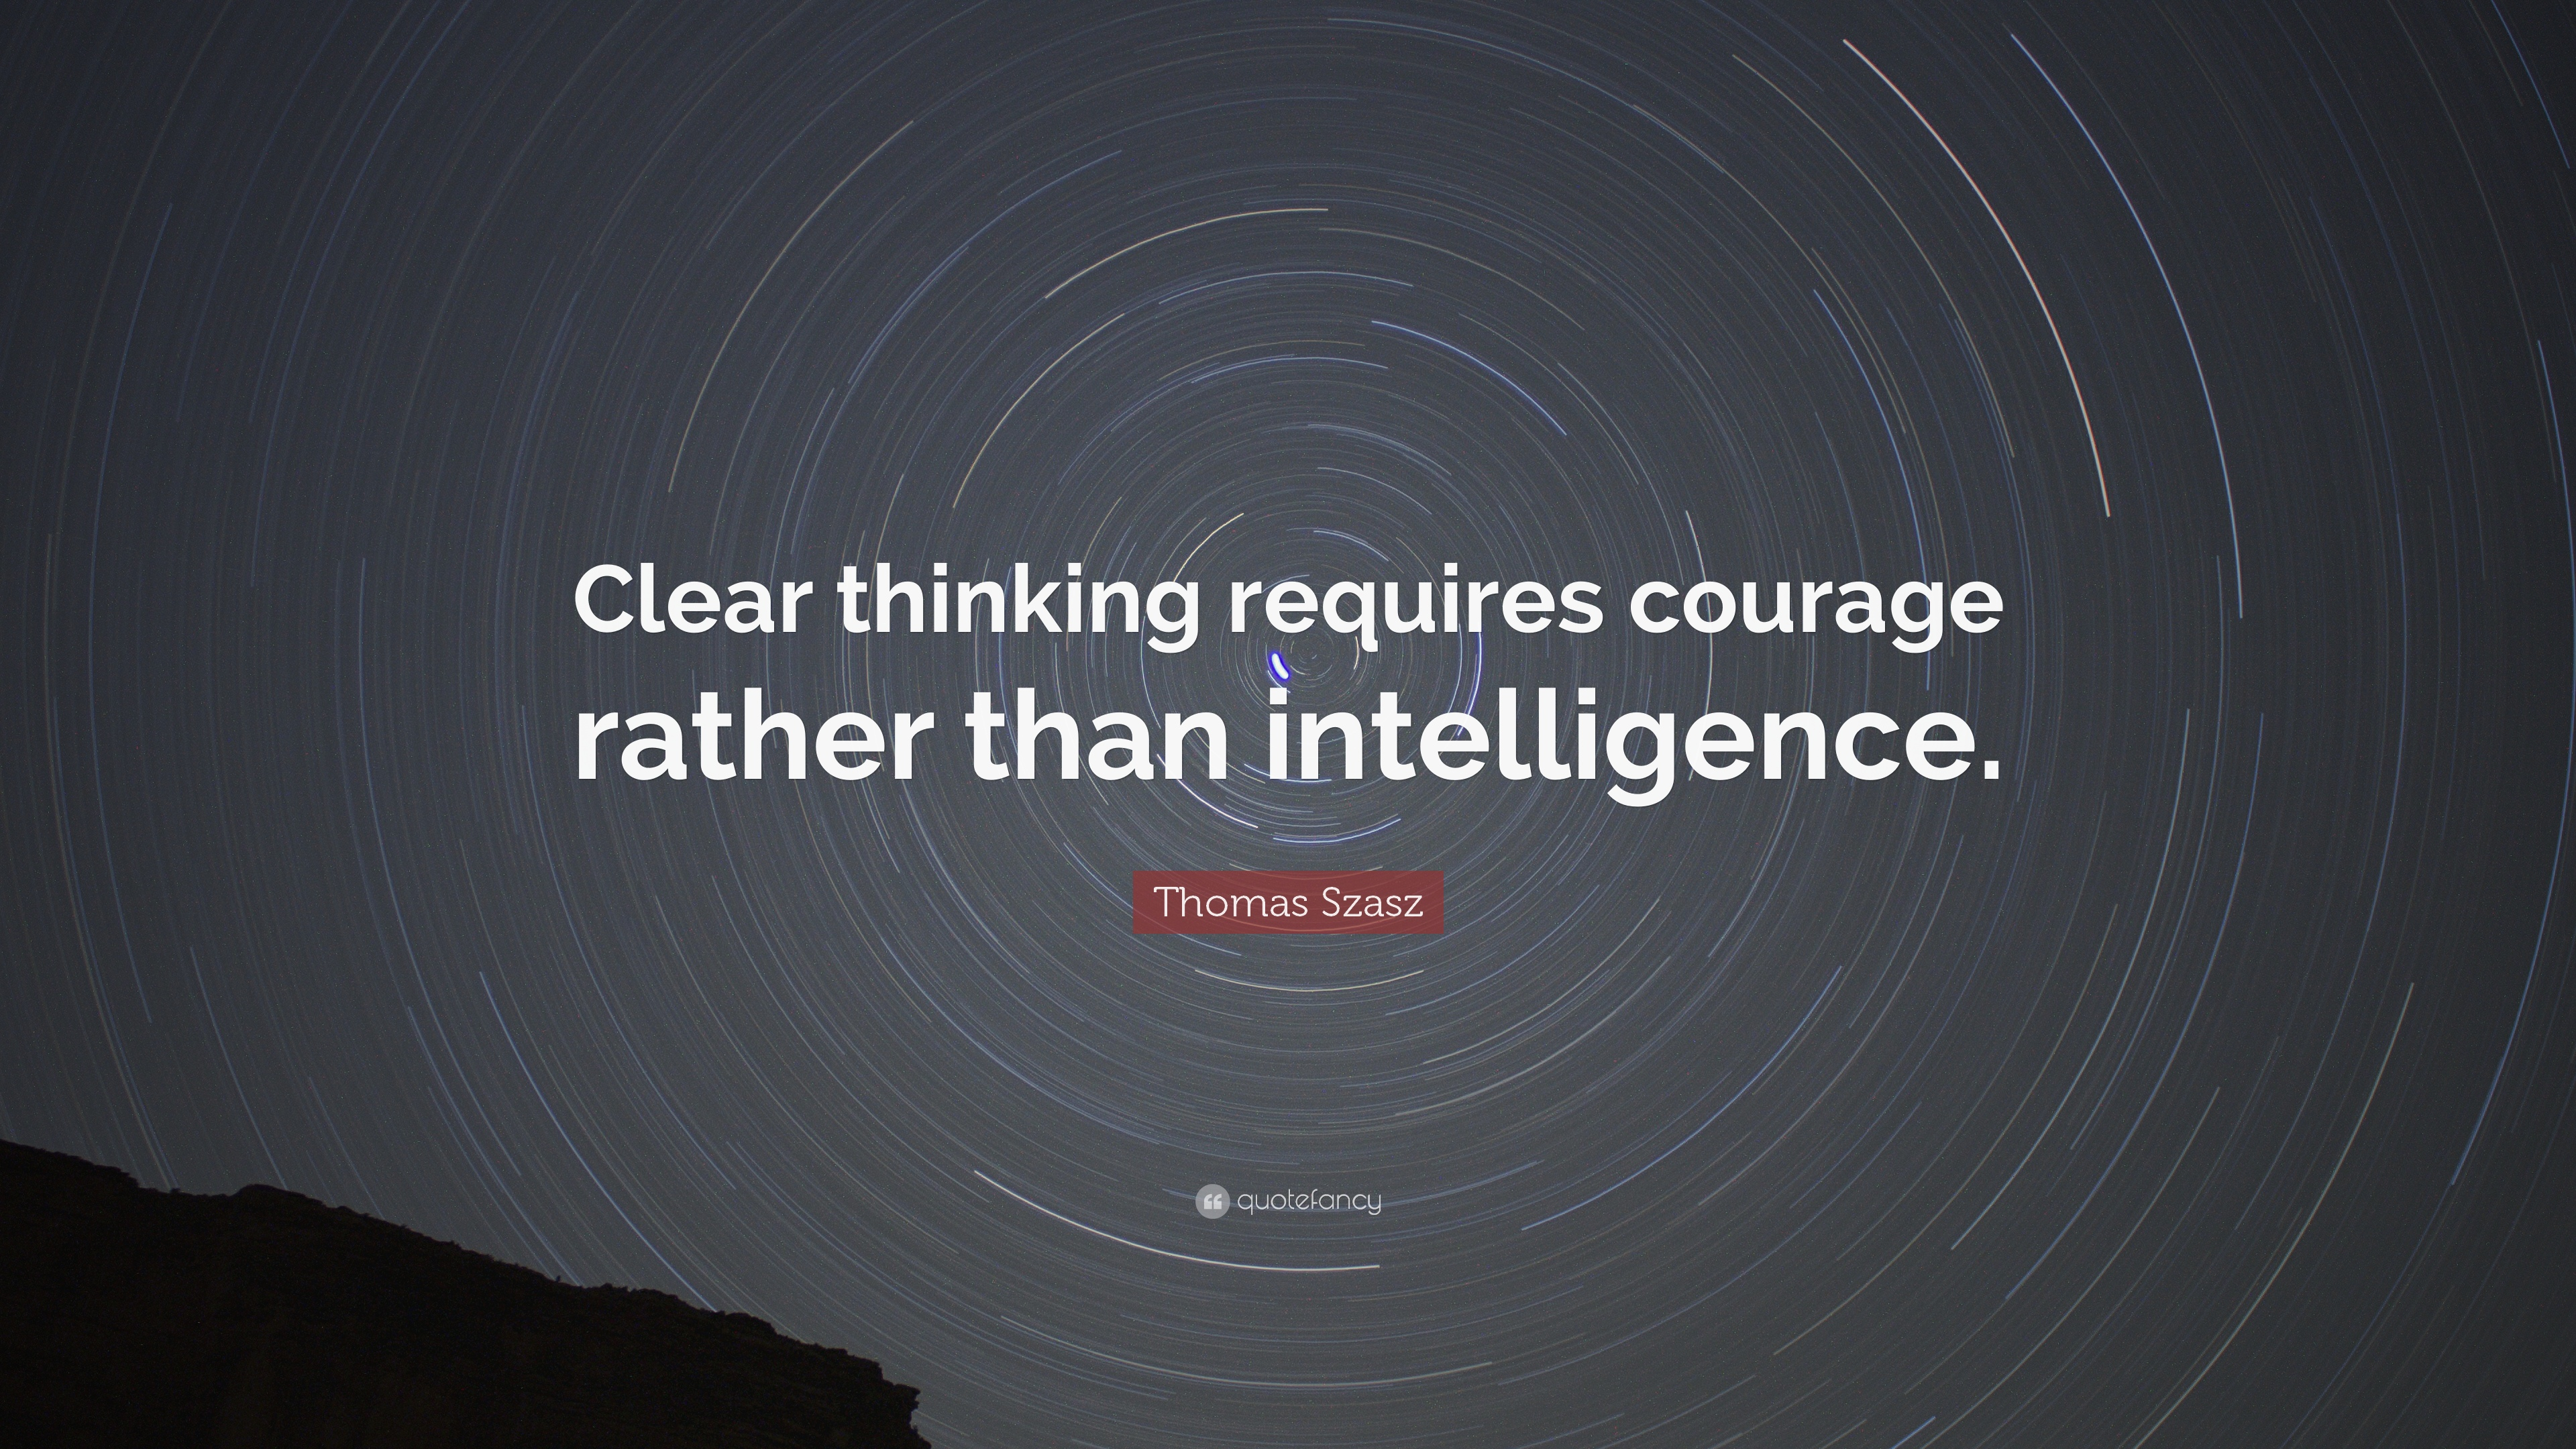 Quotes About Thinking: U201cClear Thinking Requires Courage Rather Than  Intelligence.u201d U2014 Thomas